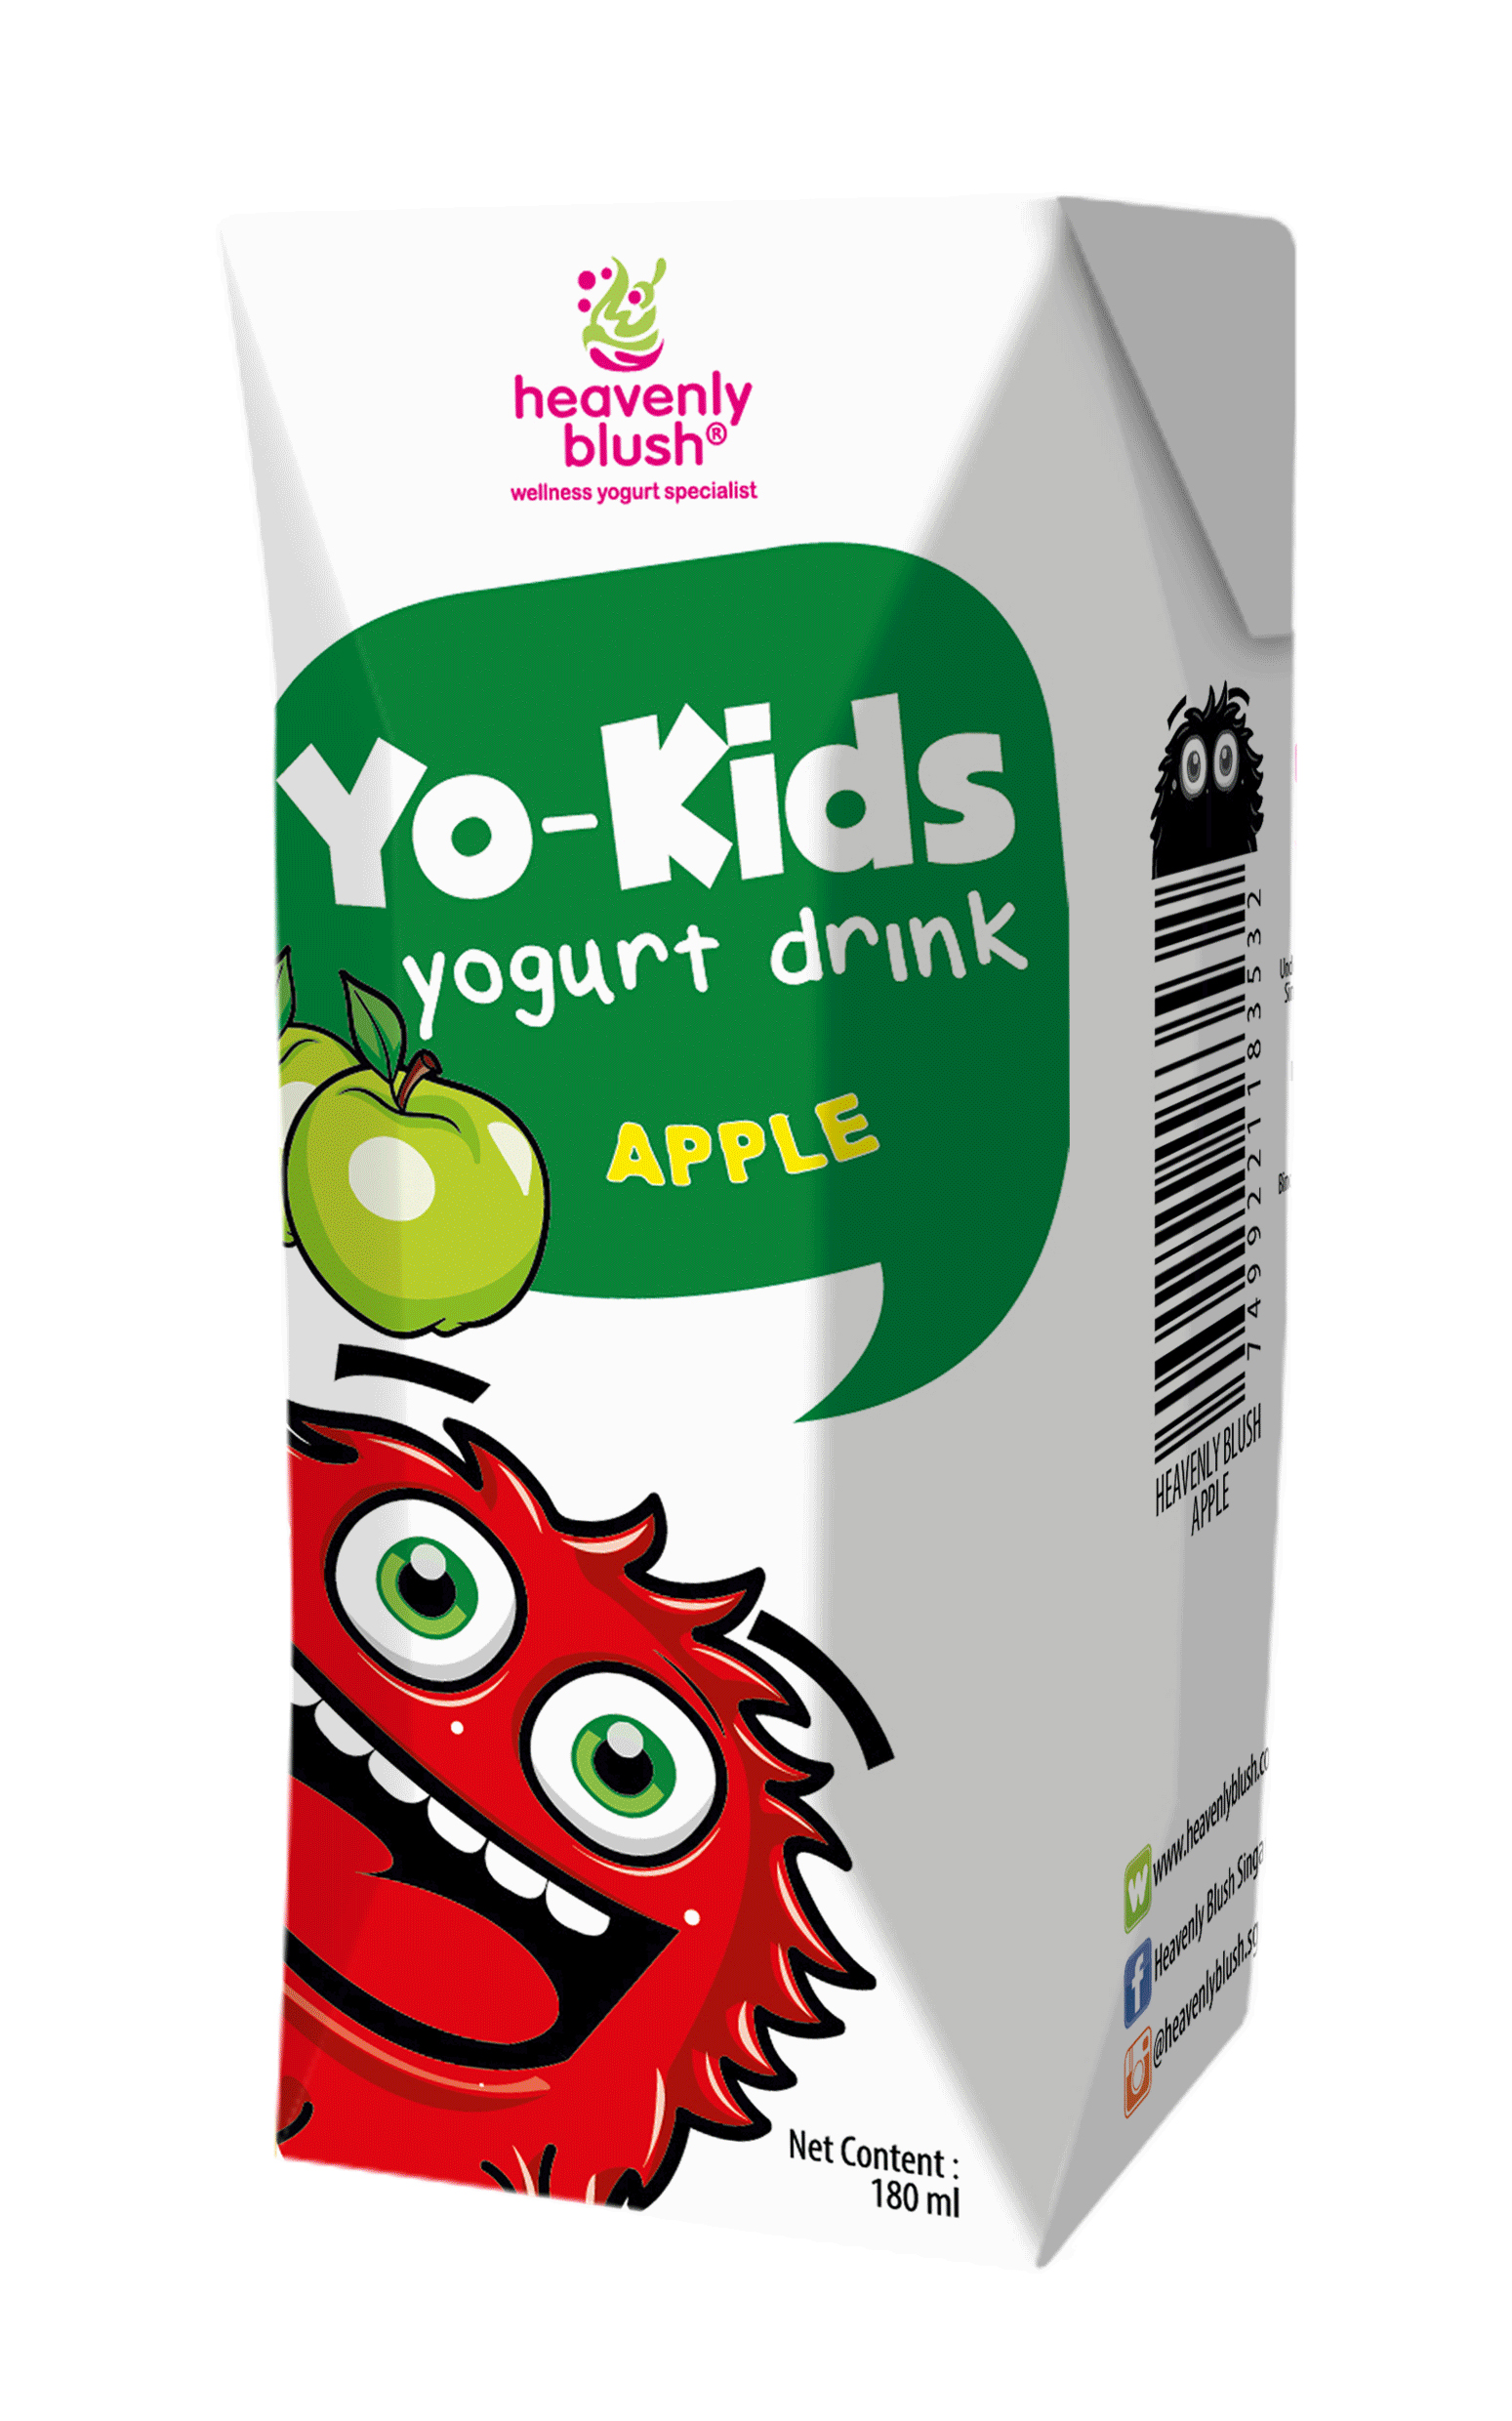 Heavenly Blush Yo Kids Drink- Apple